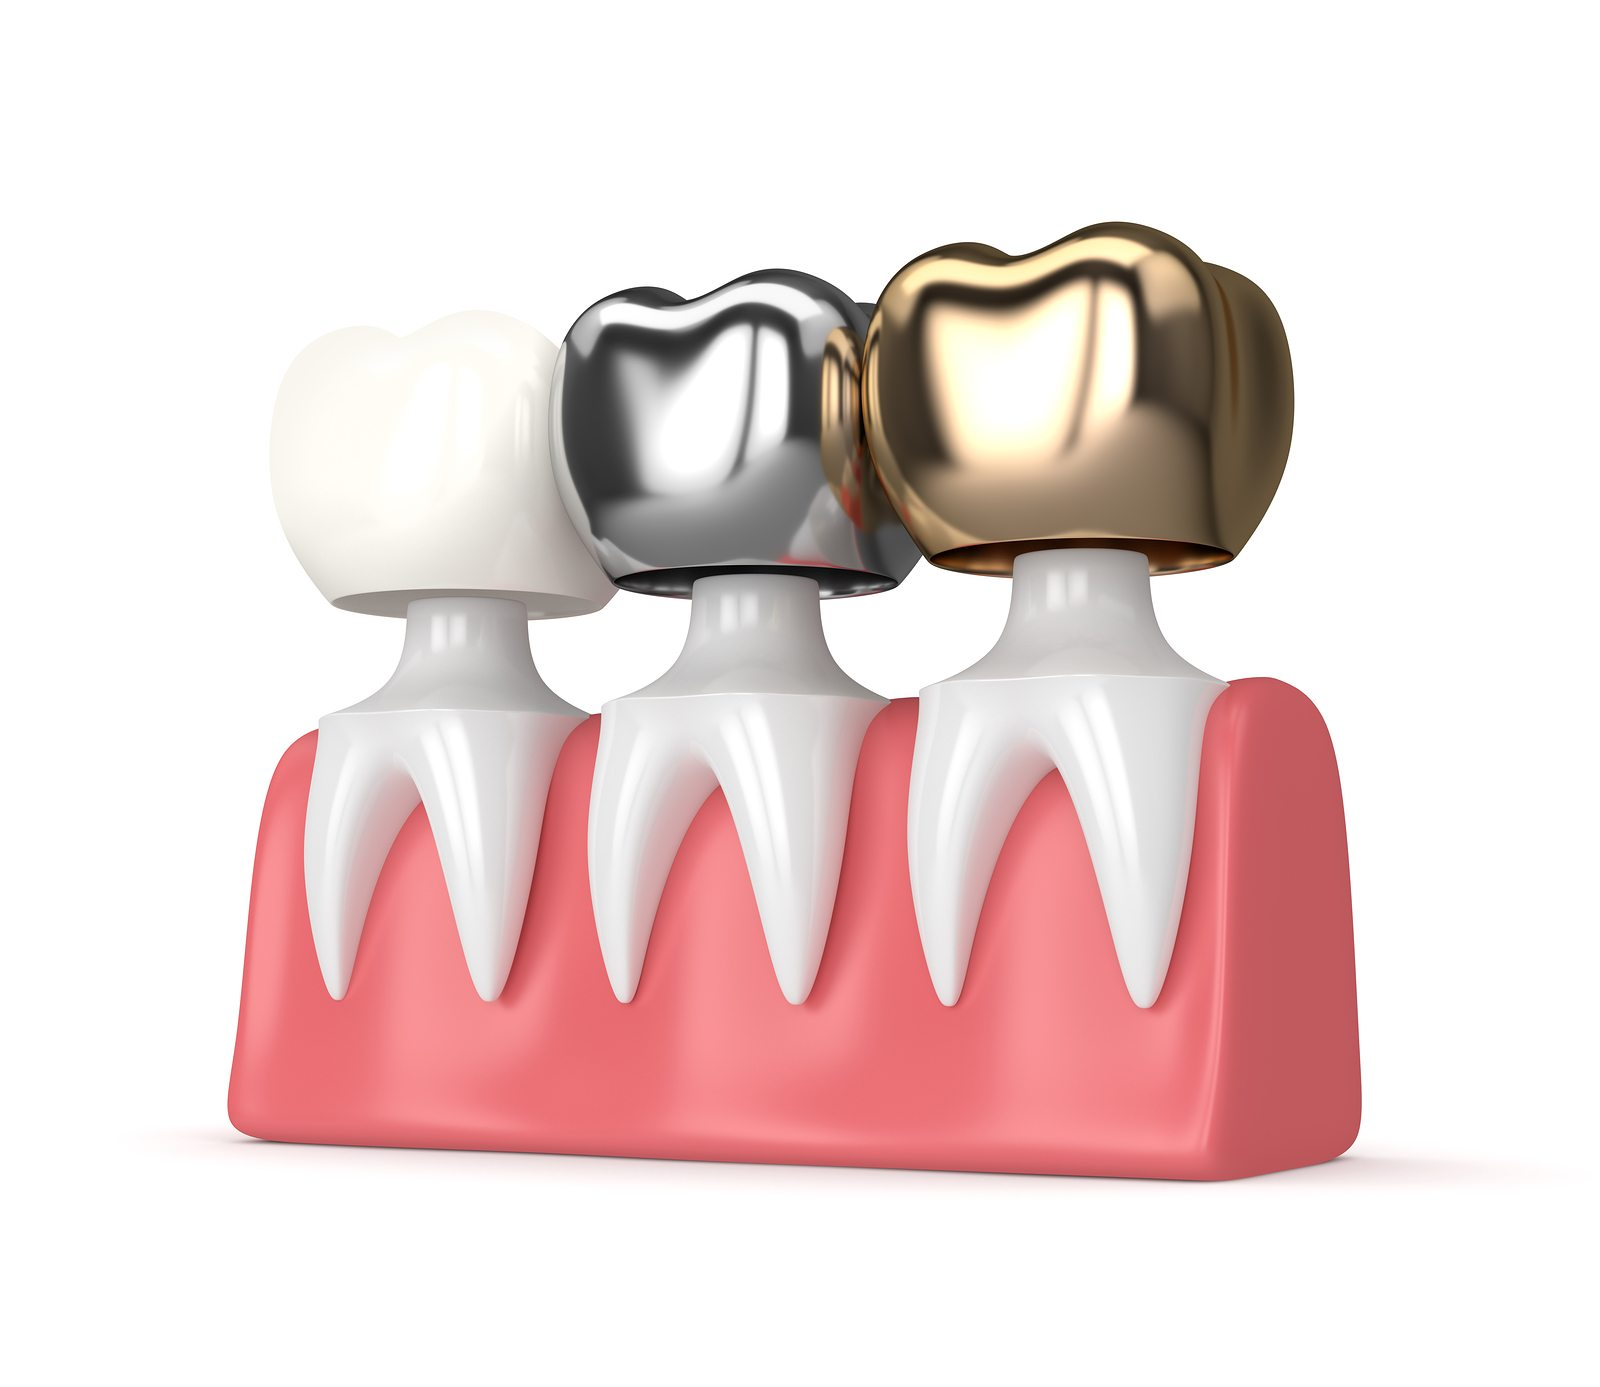 3d render of teeth with gold, amalgam and composite dental crown in gums over white background